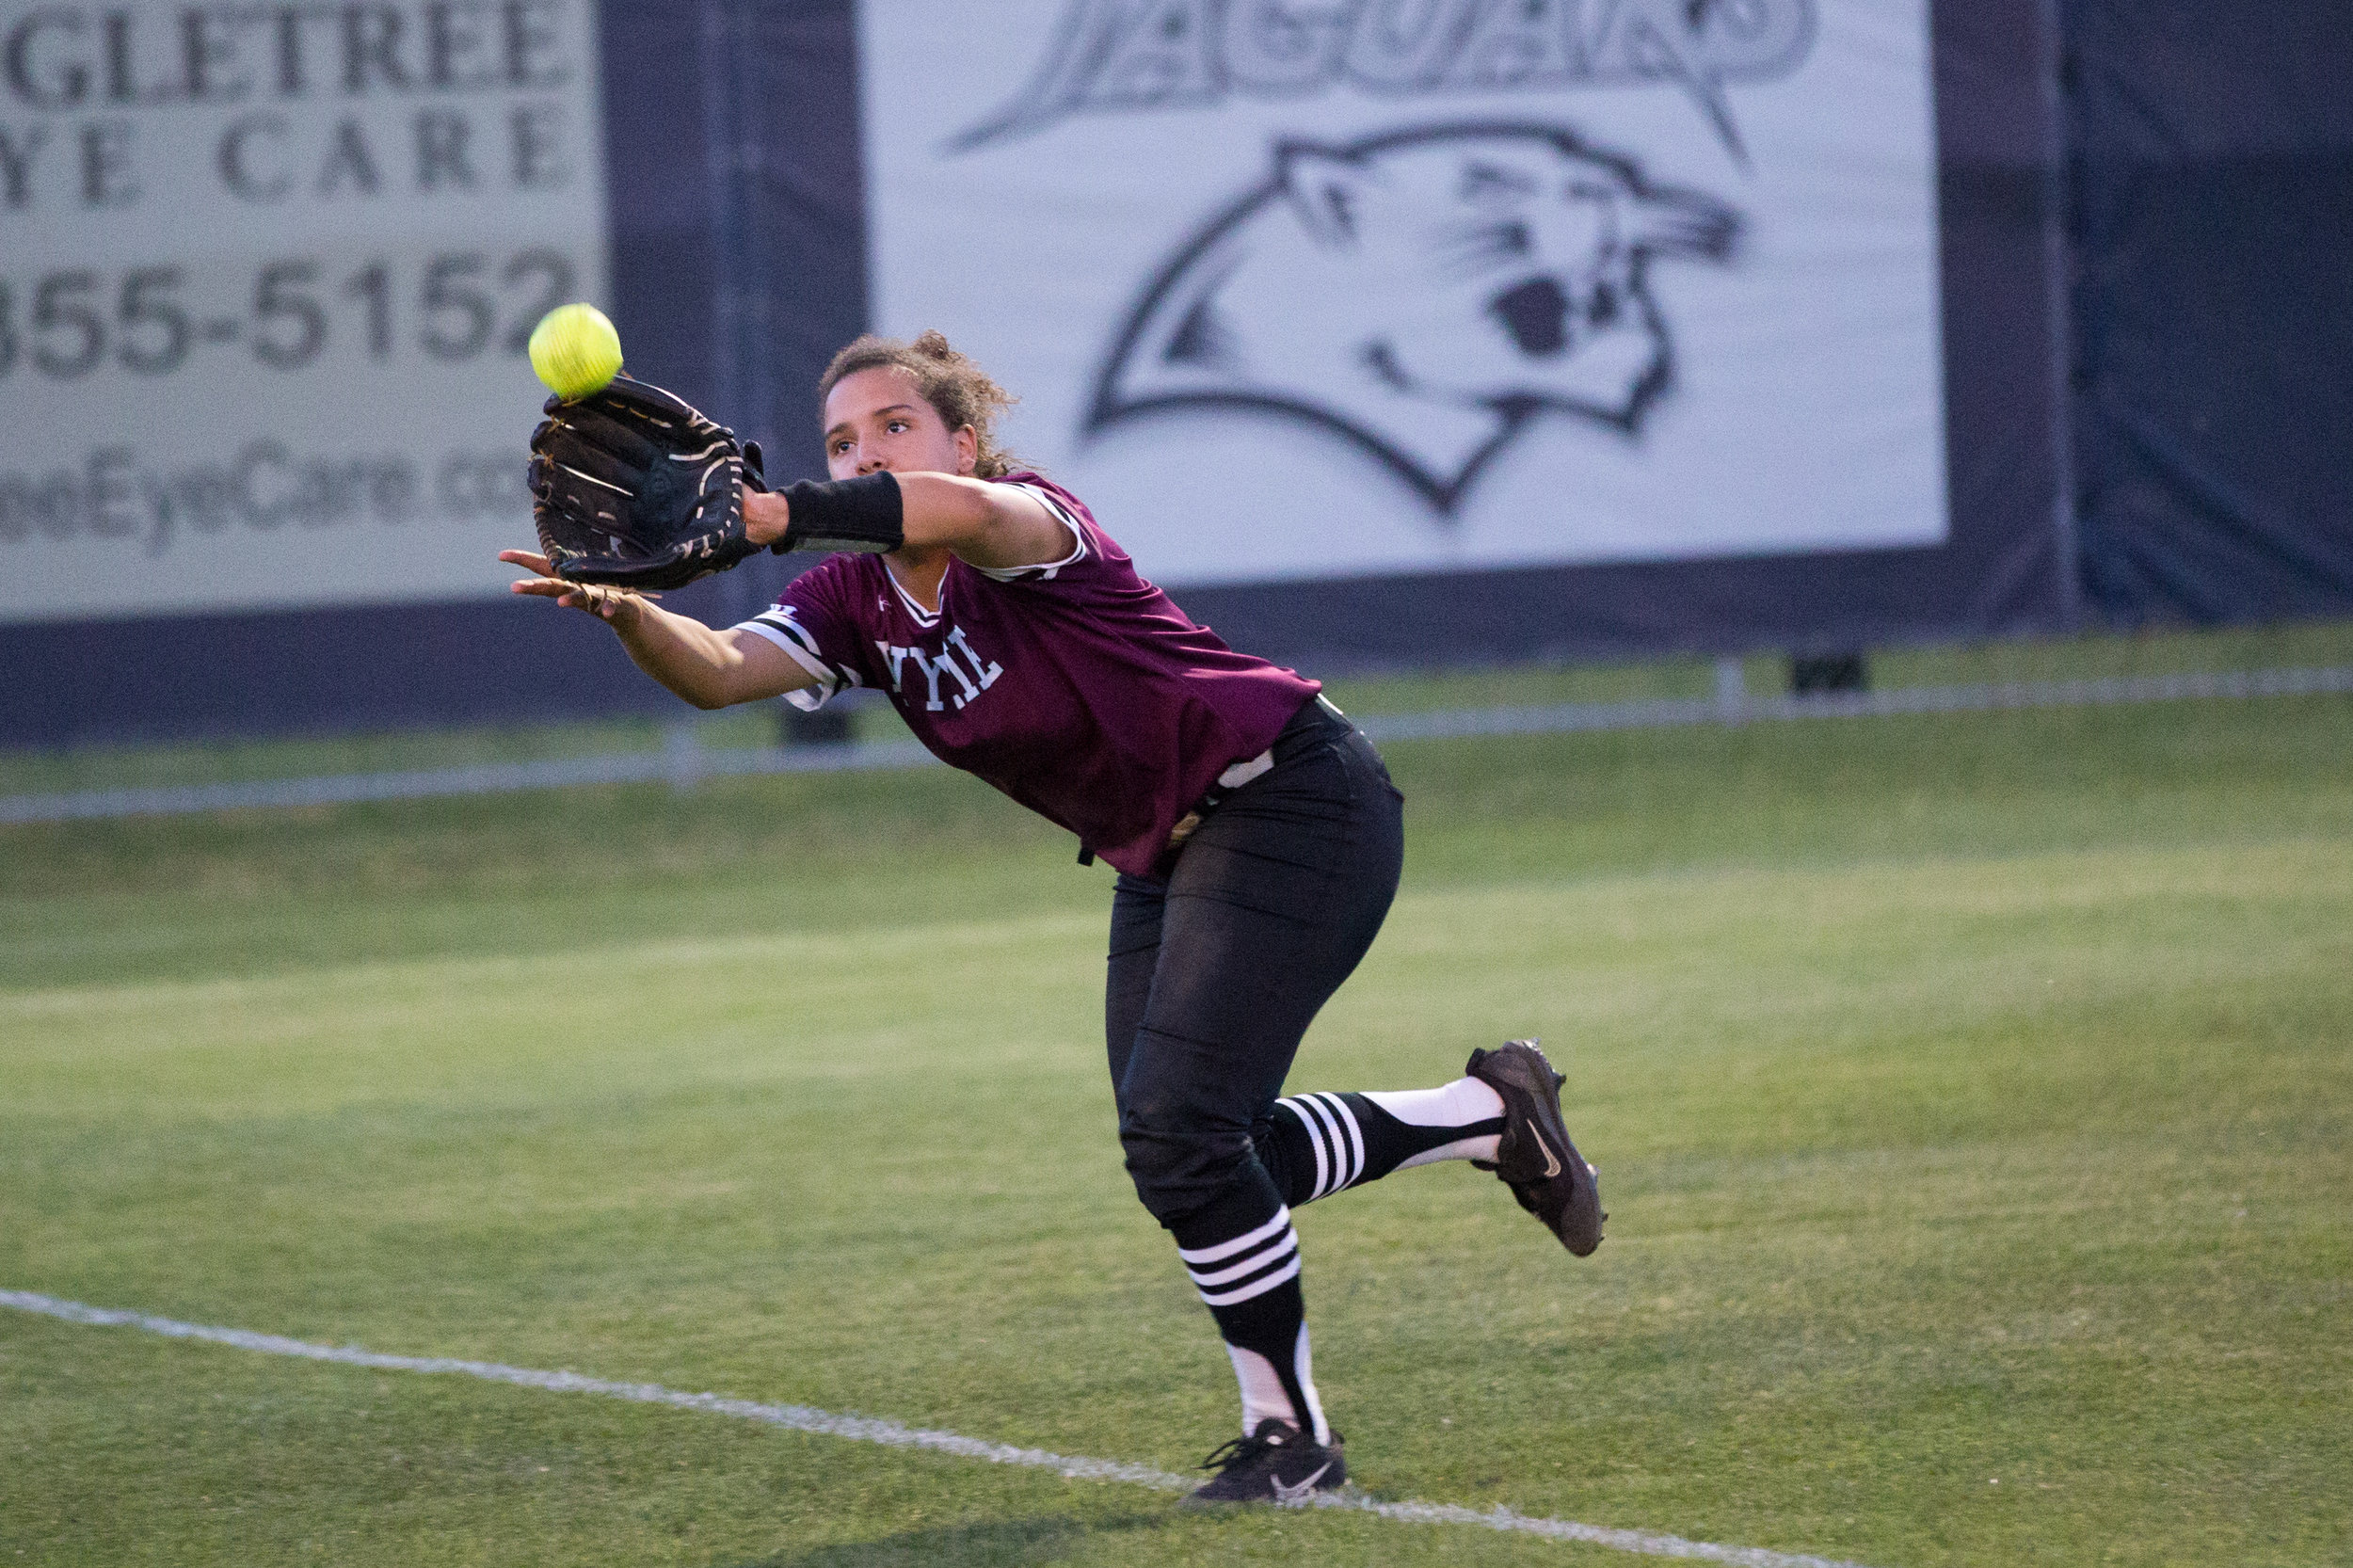 5_18 Wylie Softball-168.jpg